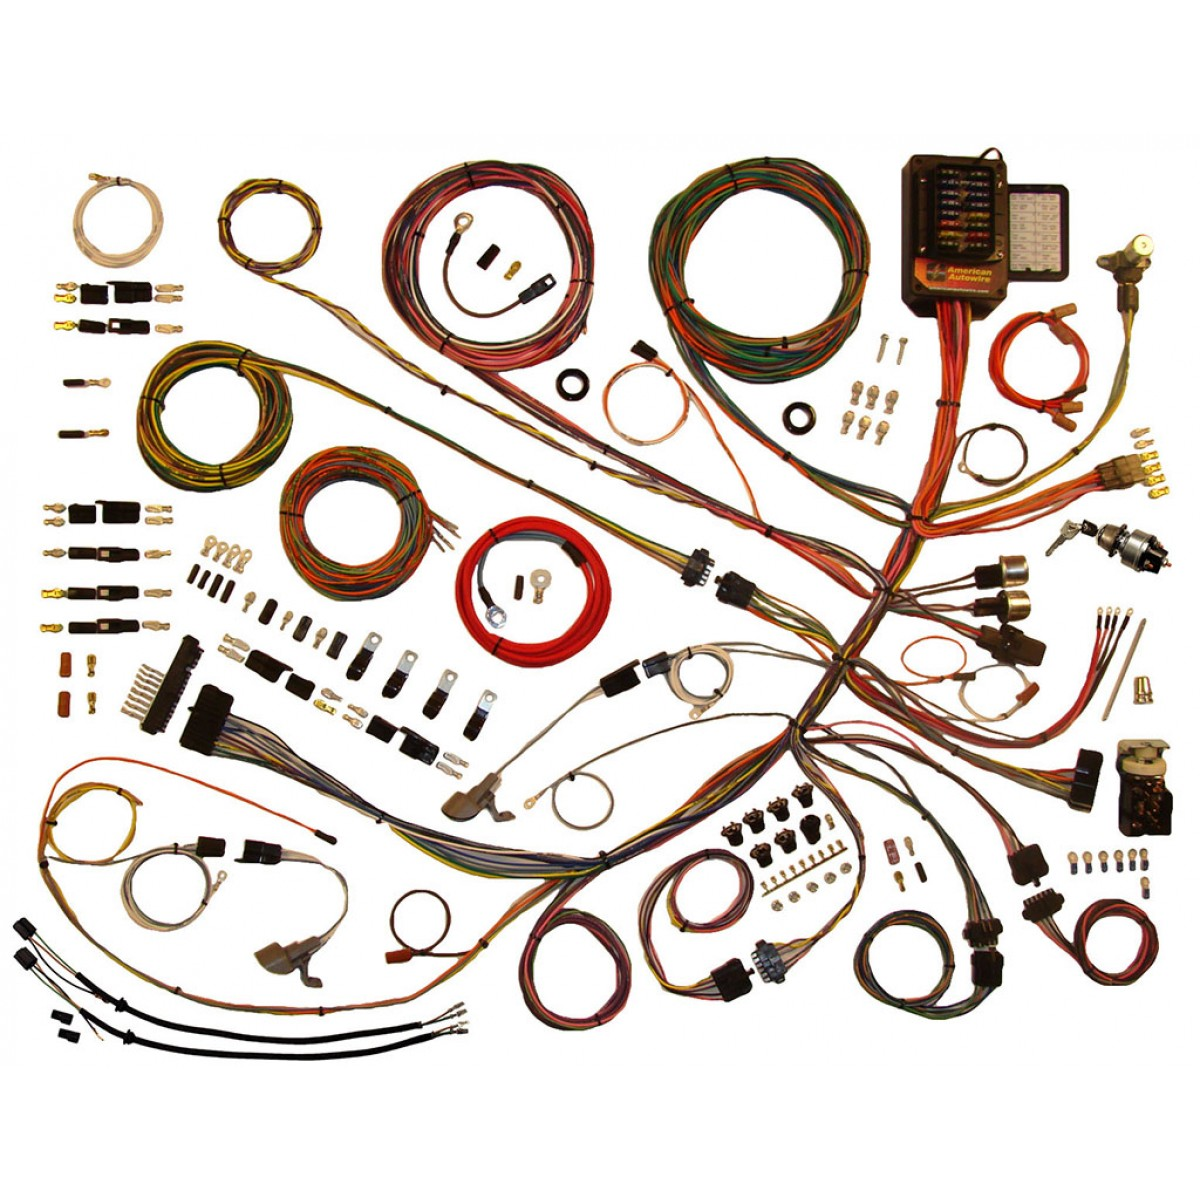 complete wiring harness kit 1953 1956 ford f100 part 510303 ford truck wiring harness f100 1953 1956 ford f100 wiring harness complete wiring harness kit ford wiring harness kits at honlapkeszites.co